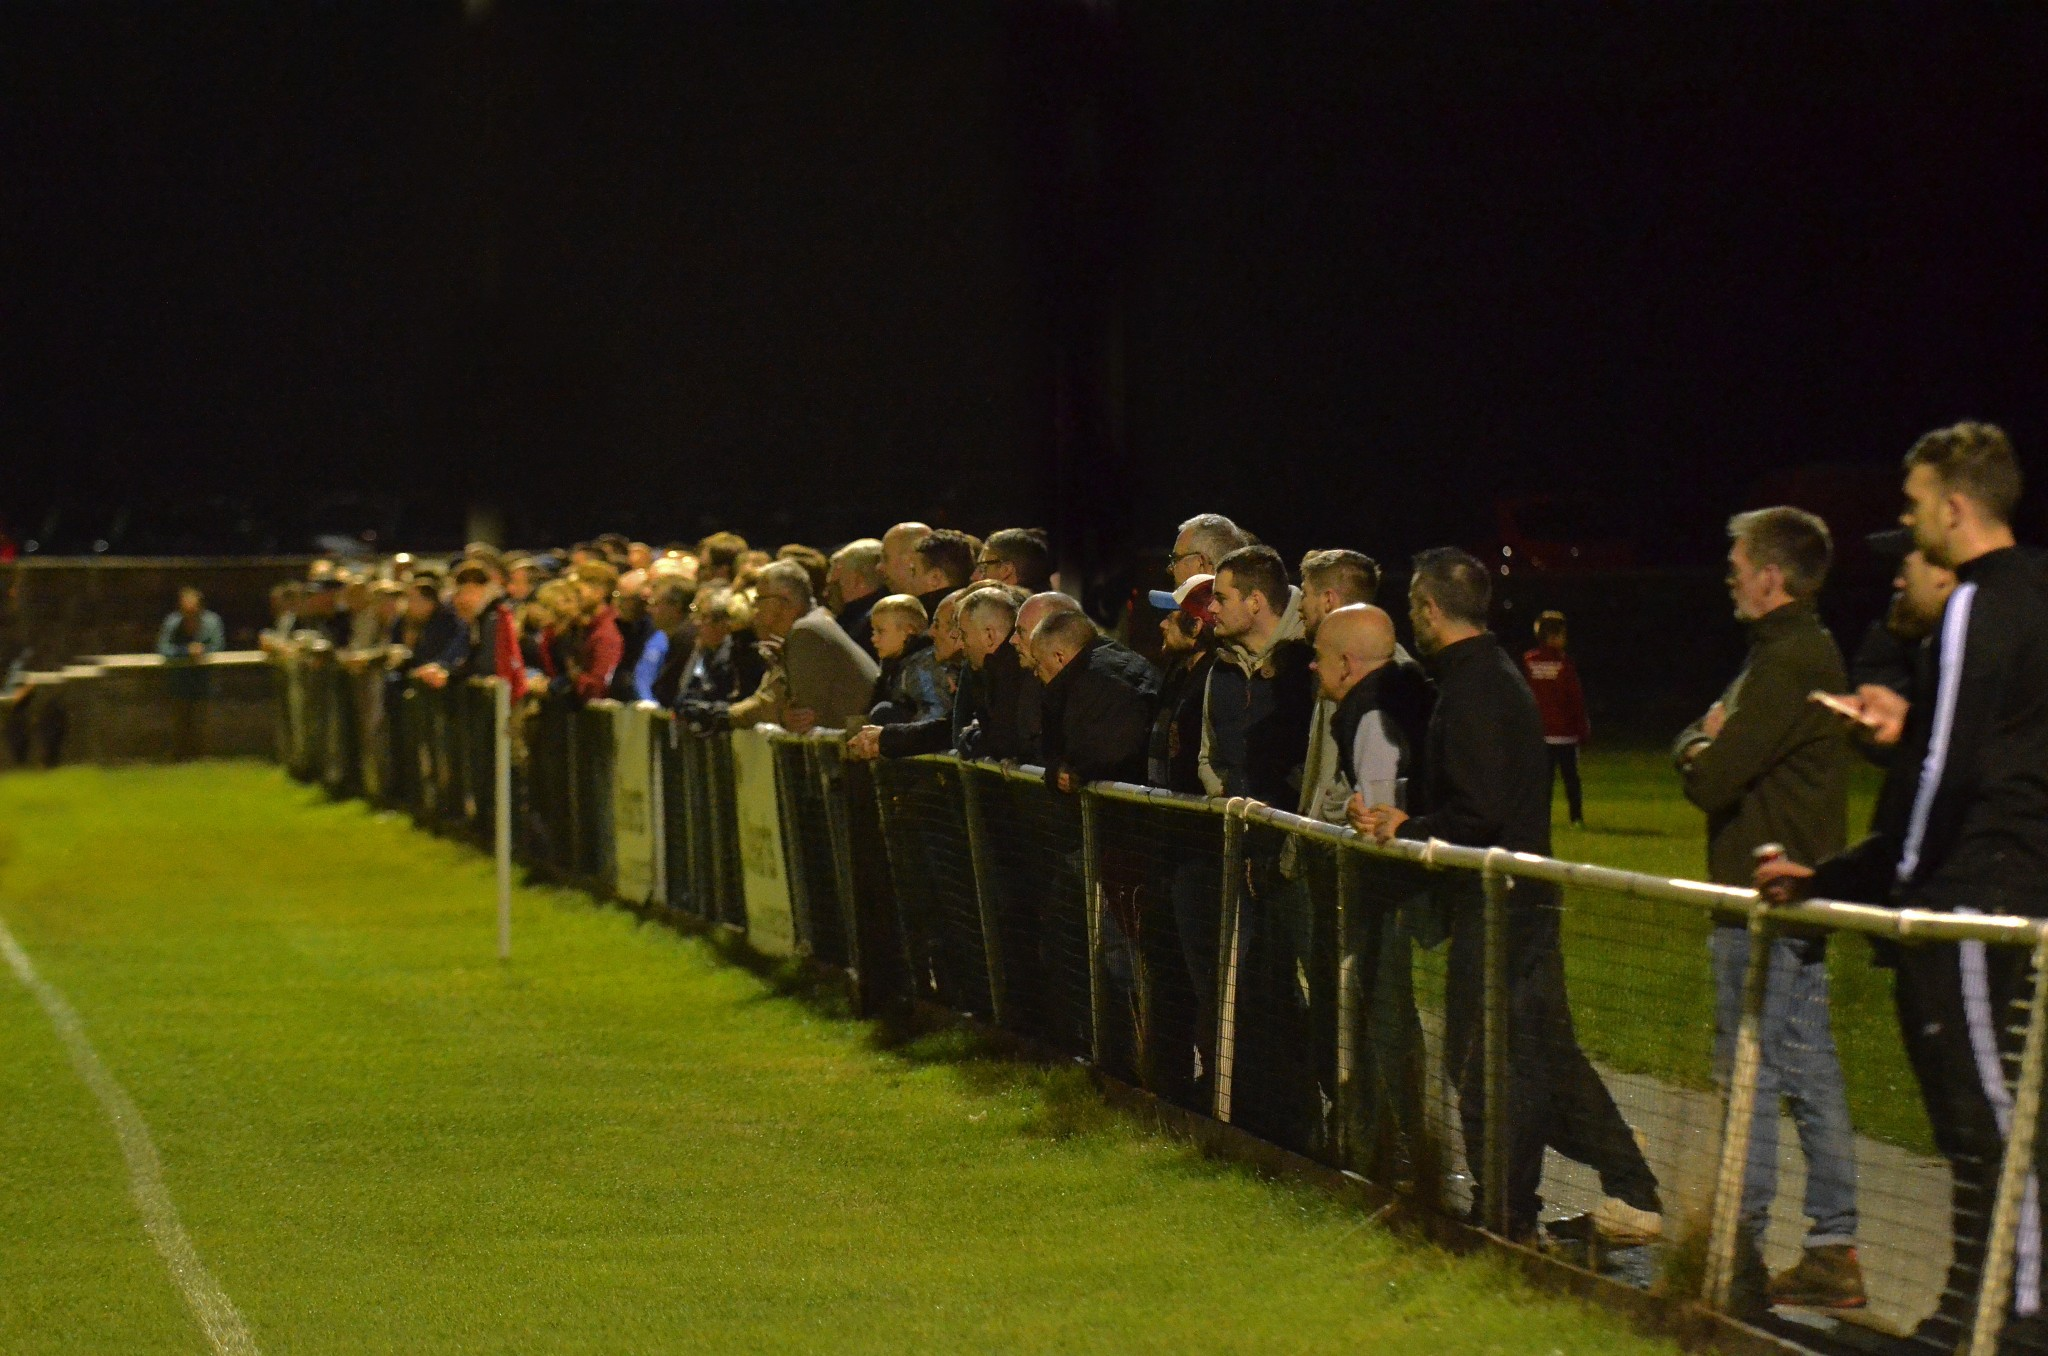 Face in the crowd: Were you at Bracknell Town FC vs Binfield FC in the FA Vase?